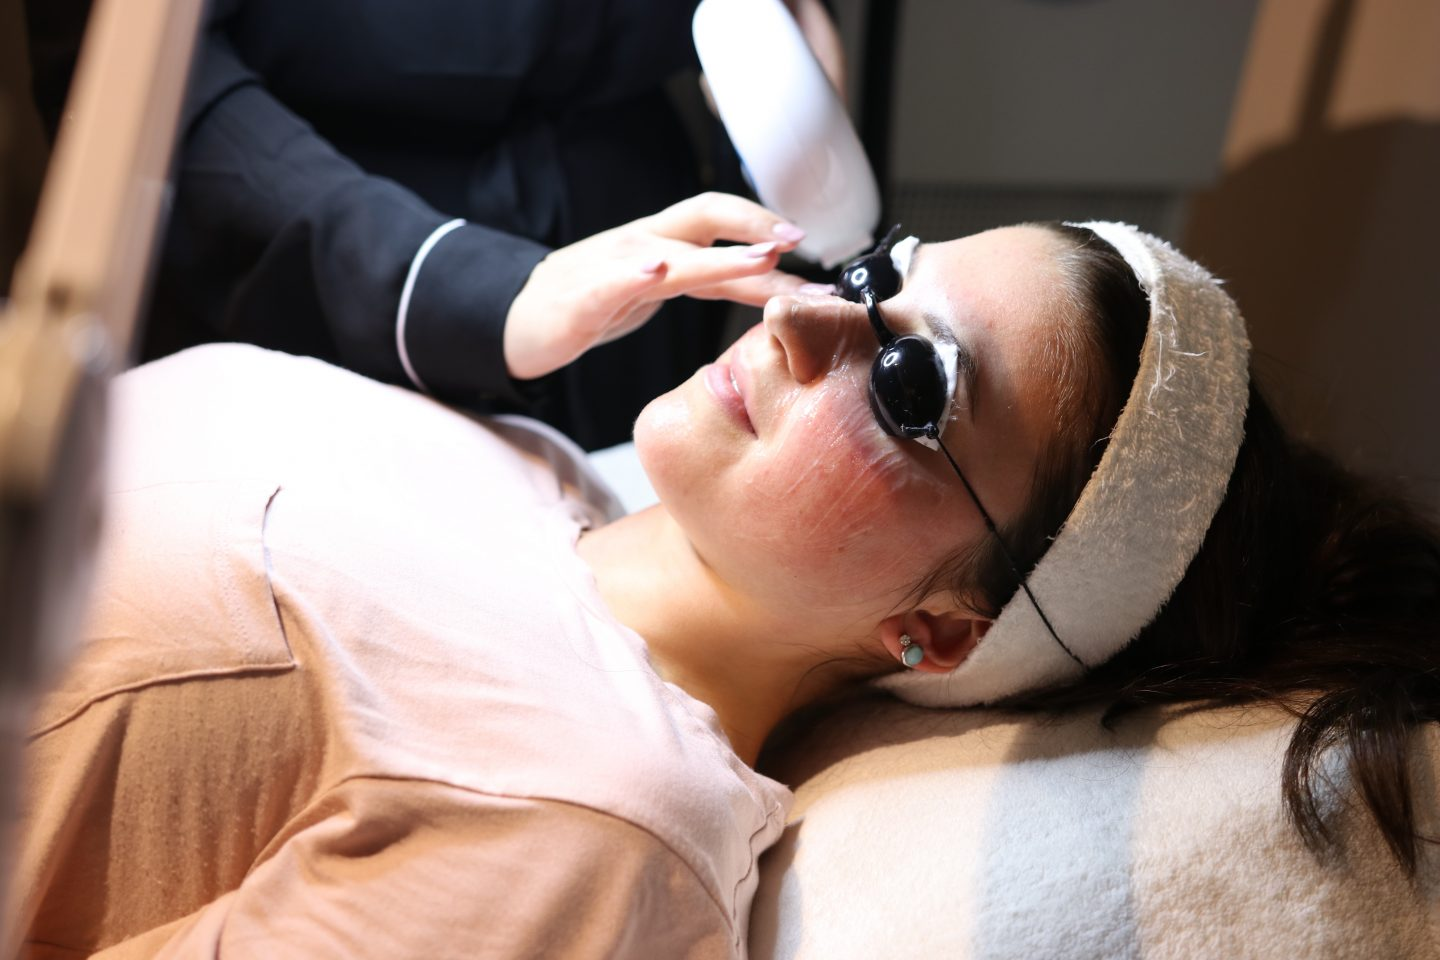 Treating my Rosacea with IPL Photorejuvination